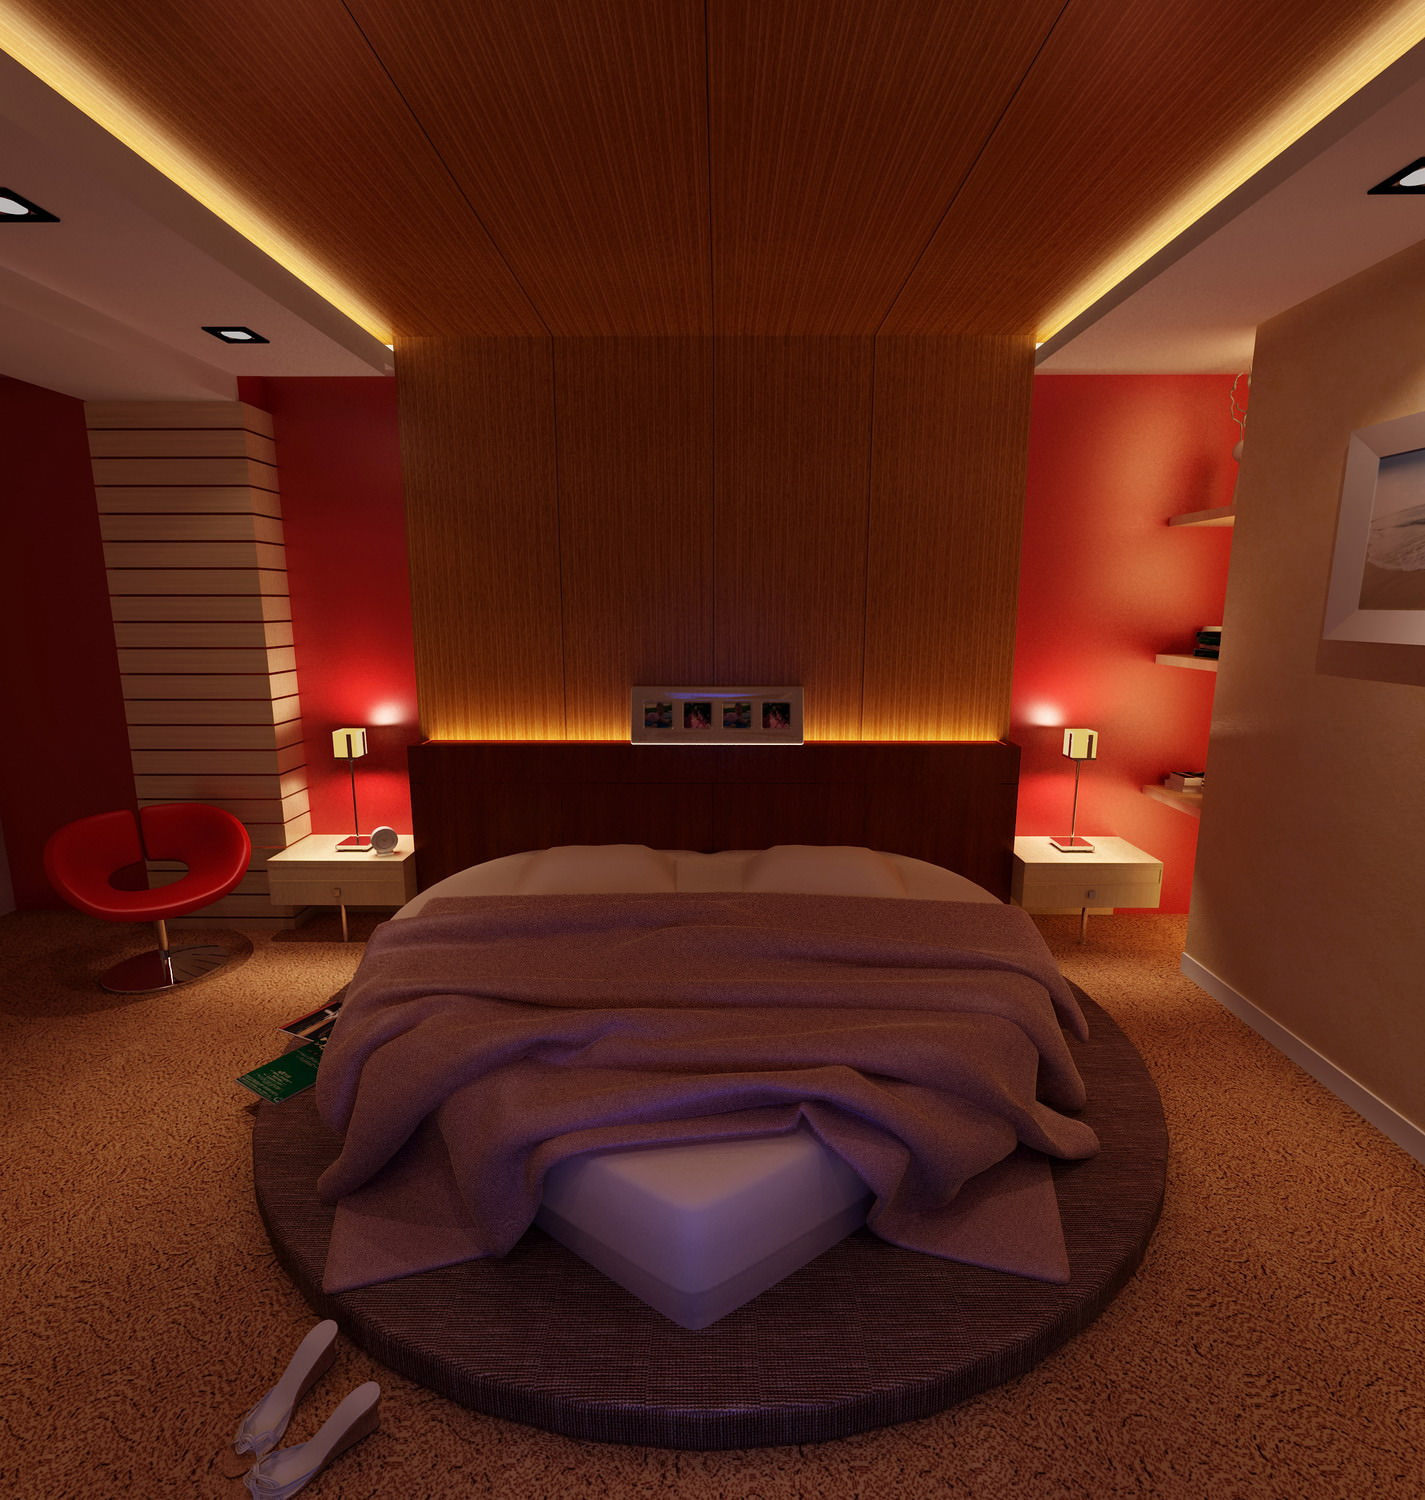 Amazing ... Bedroom With Heart Shaped Bed 3d Model Max 2 ...